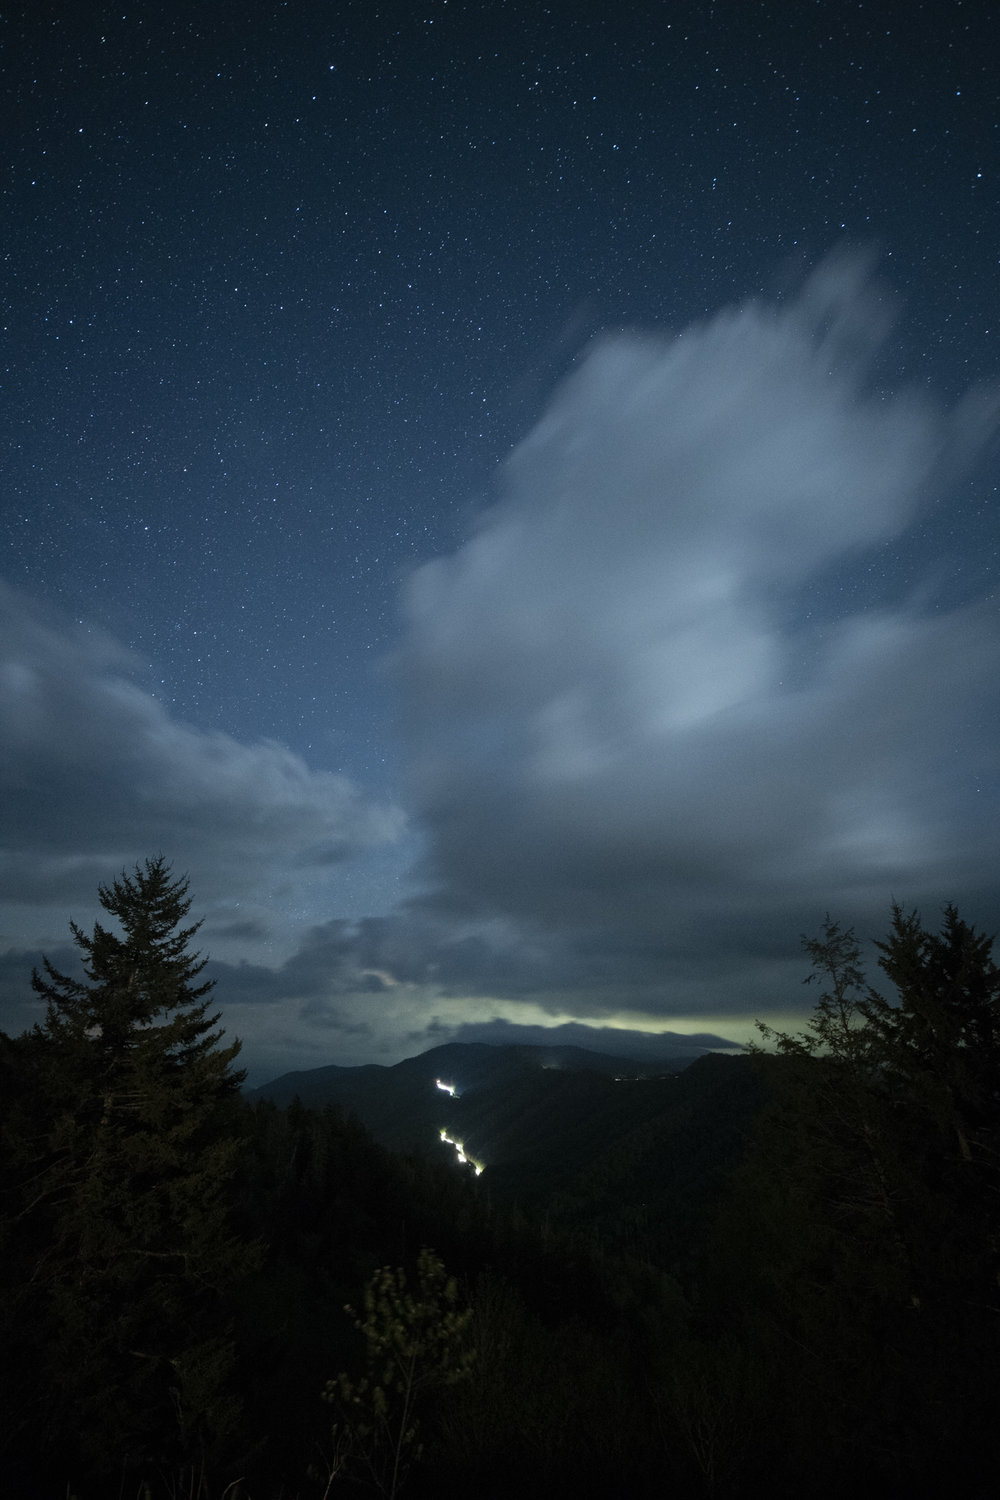 Nikon D750 ,  Zeiss 15mm Distagon f/2.8 . 22 seconds, f/2.8, ISO 6400.